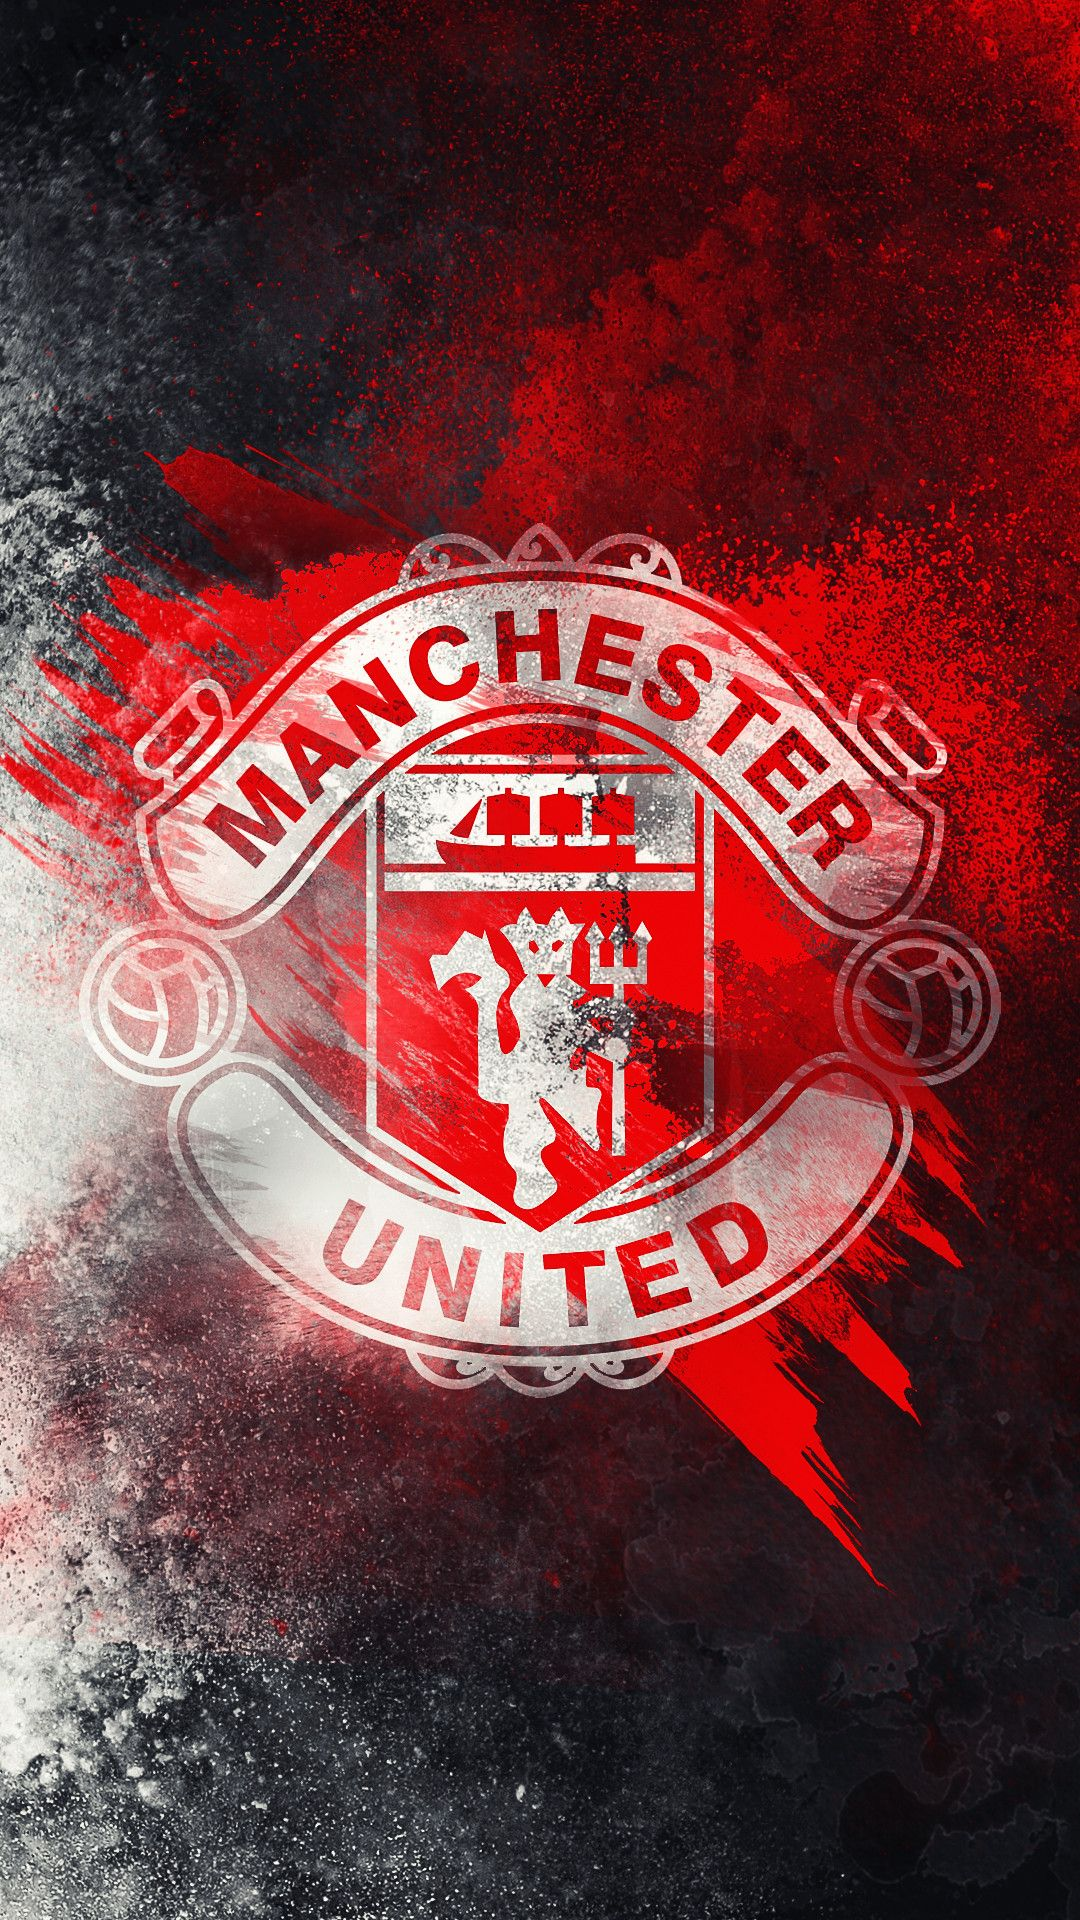 Manchester United Hd Logo Wallpaper By Kerimov23 Manchester United Wallpapers Iphone Manchester United Logo Manchester United Wallpaper